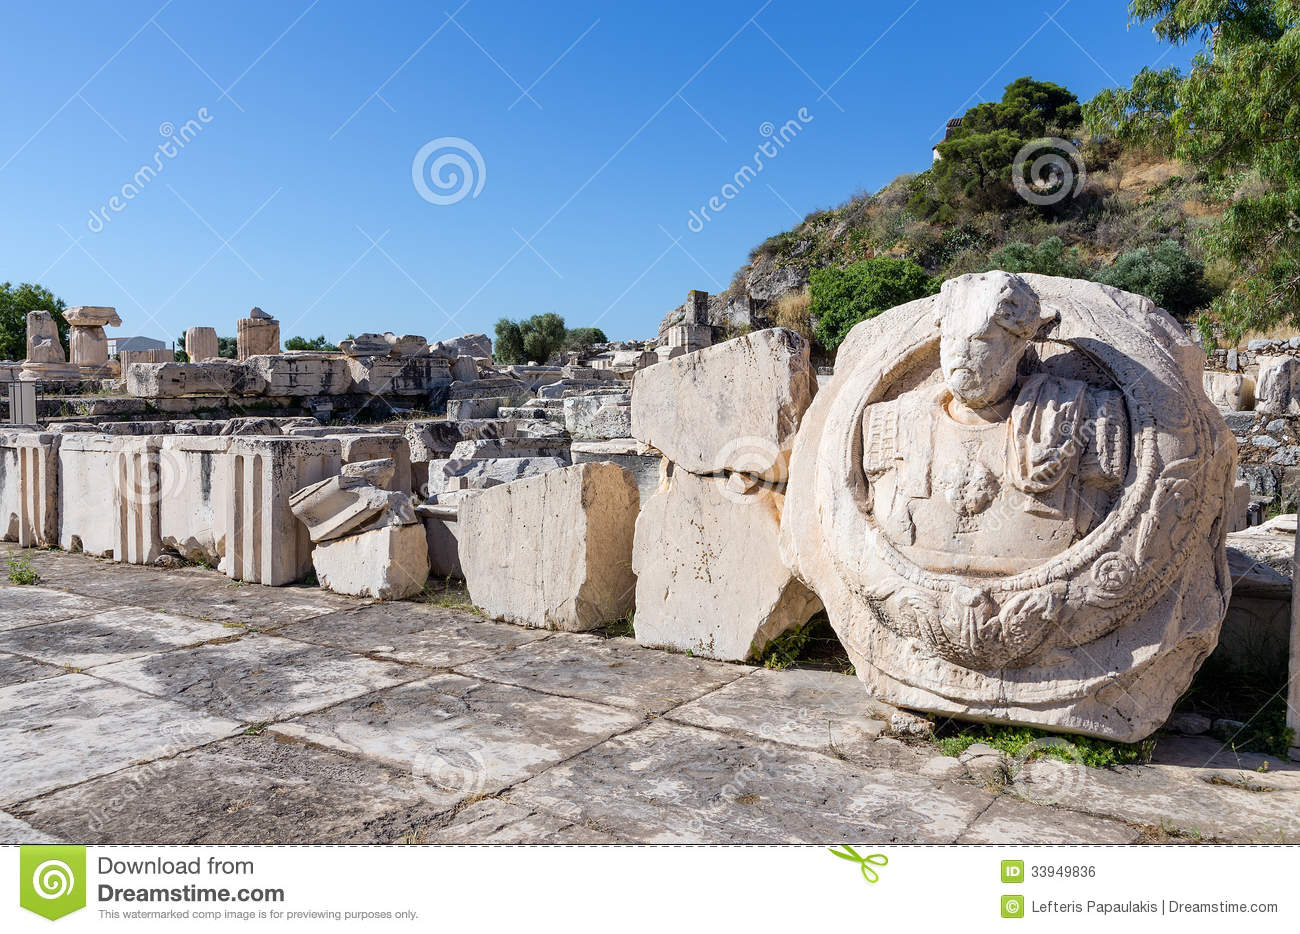 Ancient ruins of Eleusis, bust of Roman Emperor Marcus Aurelius in foreground, Attica, Greece